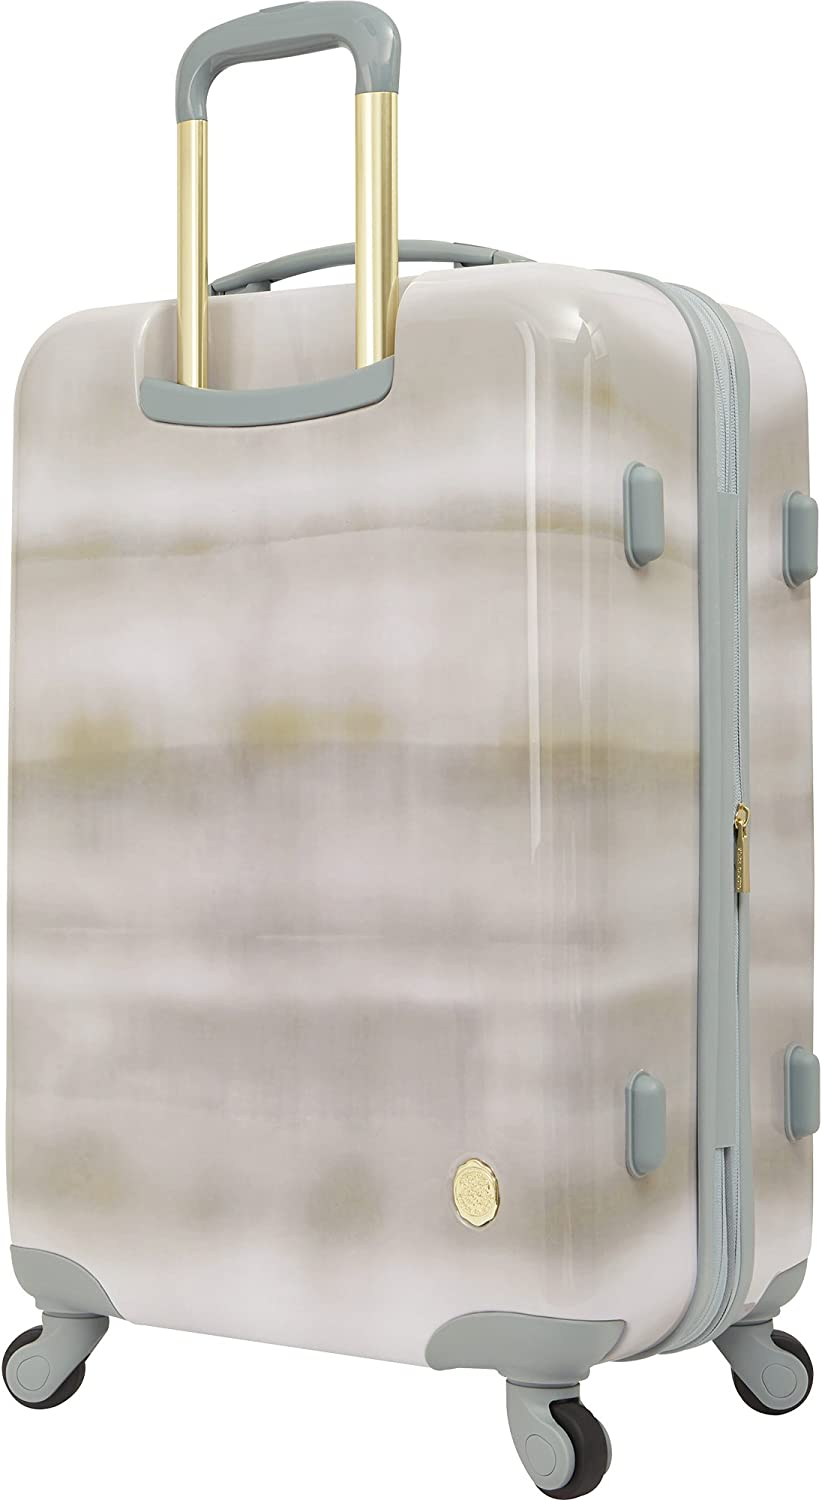 Vince Camuto Hardside Spinner Luggage 28 Inch Expandable Travel Bag Suitcase with Rolling Wheels and Hard Case